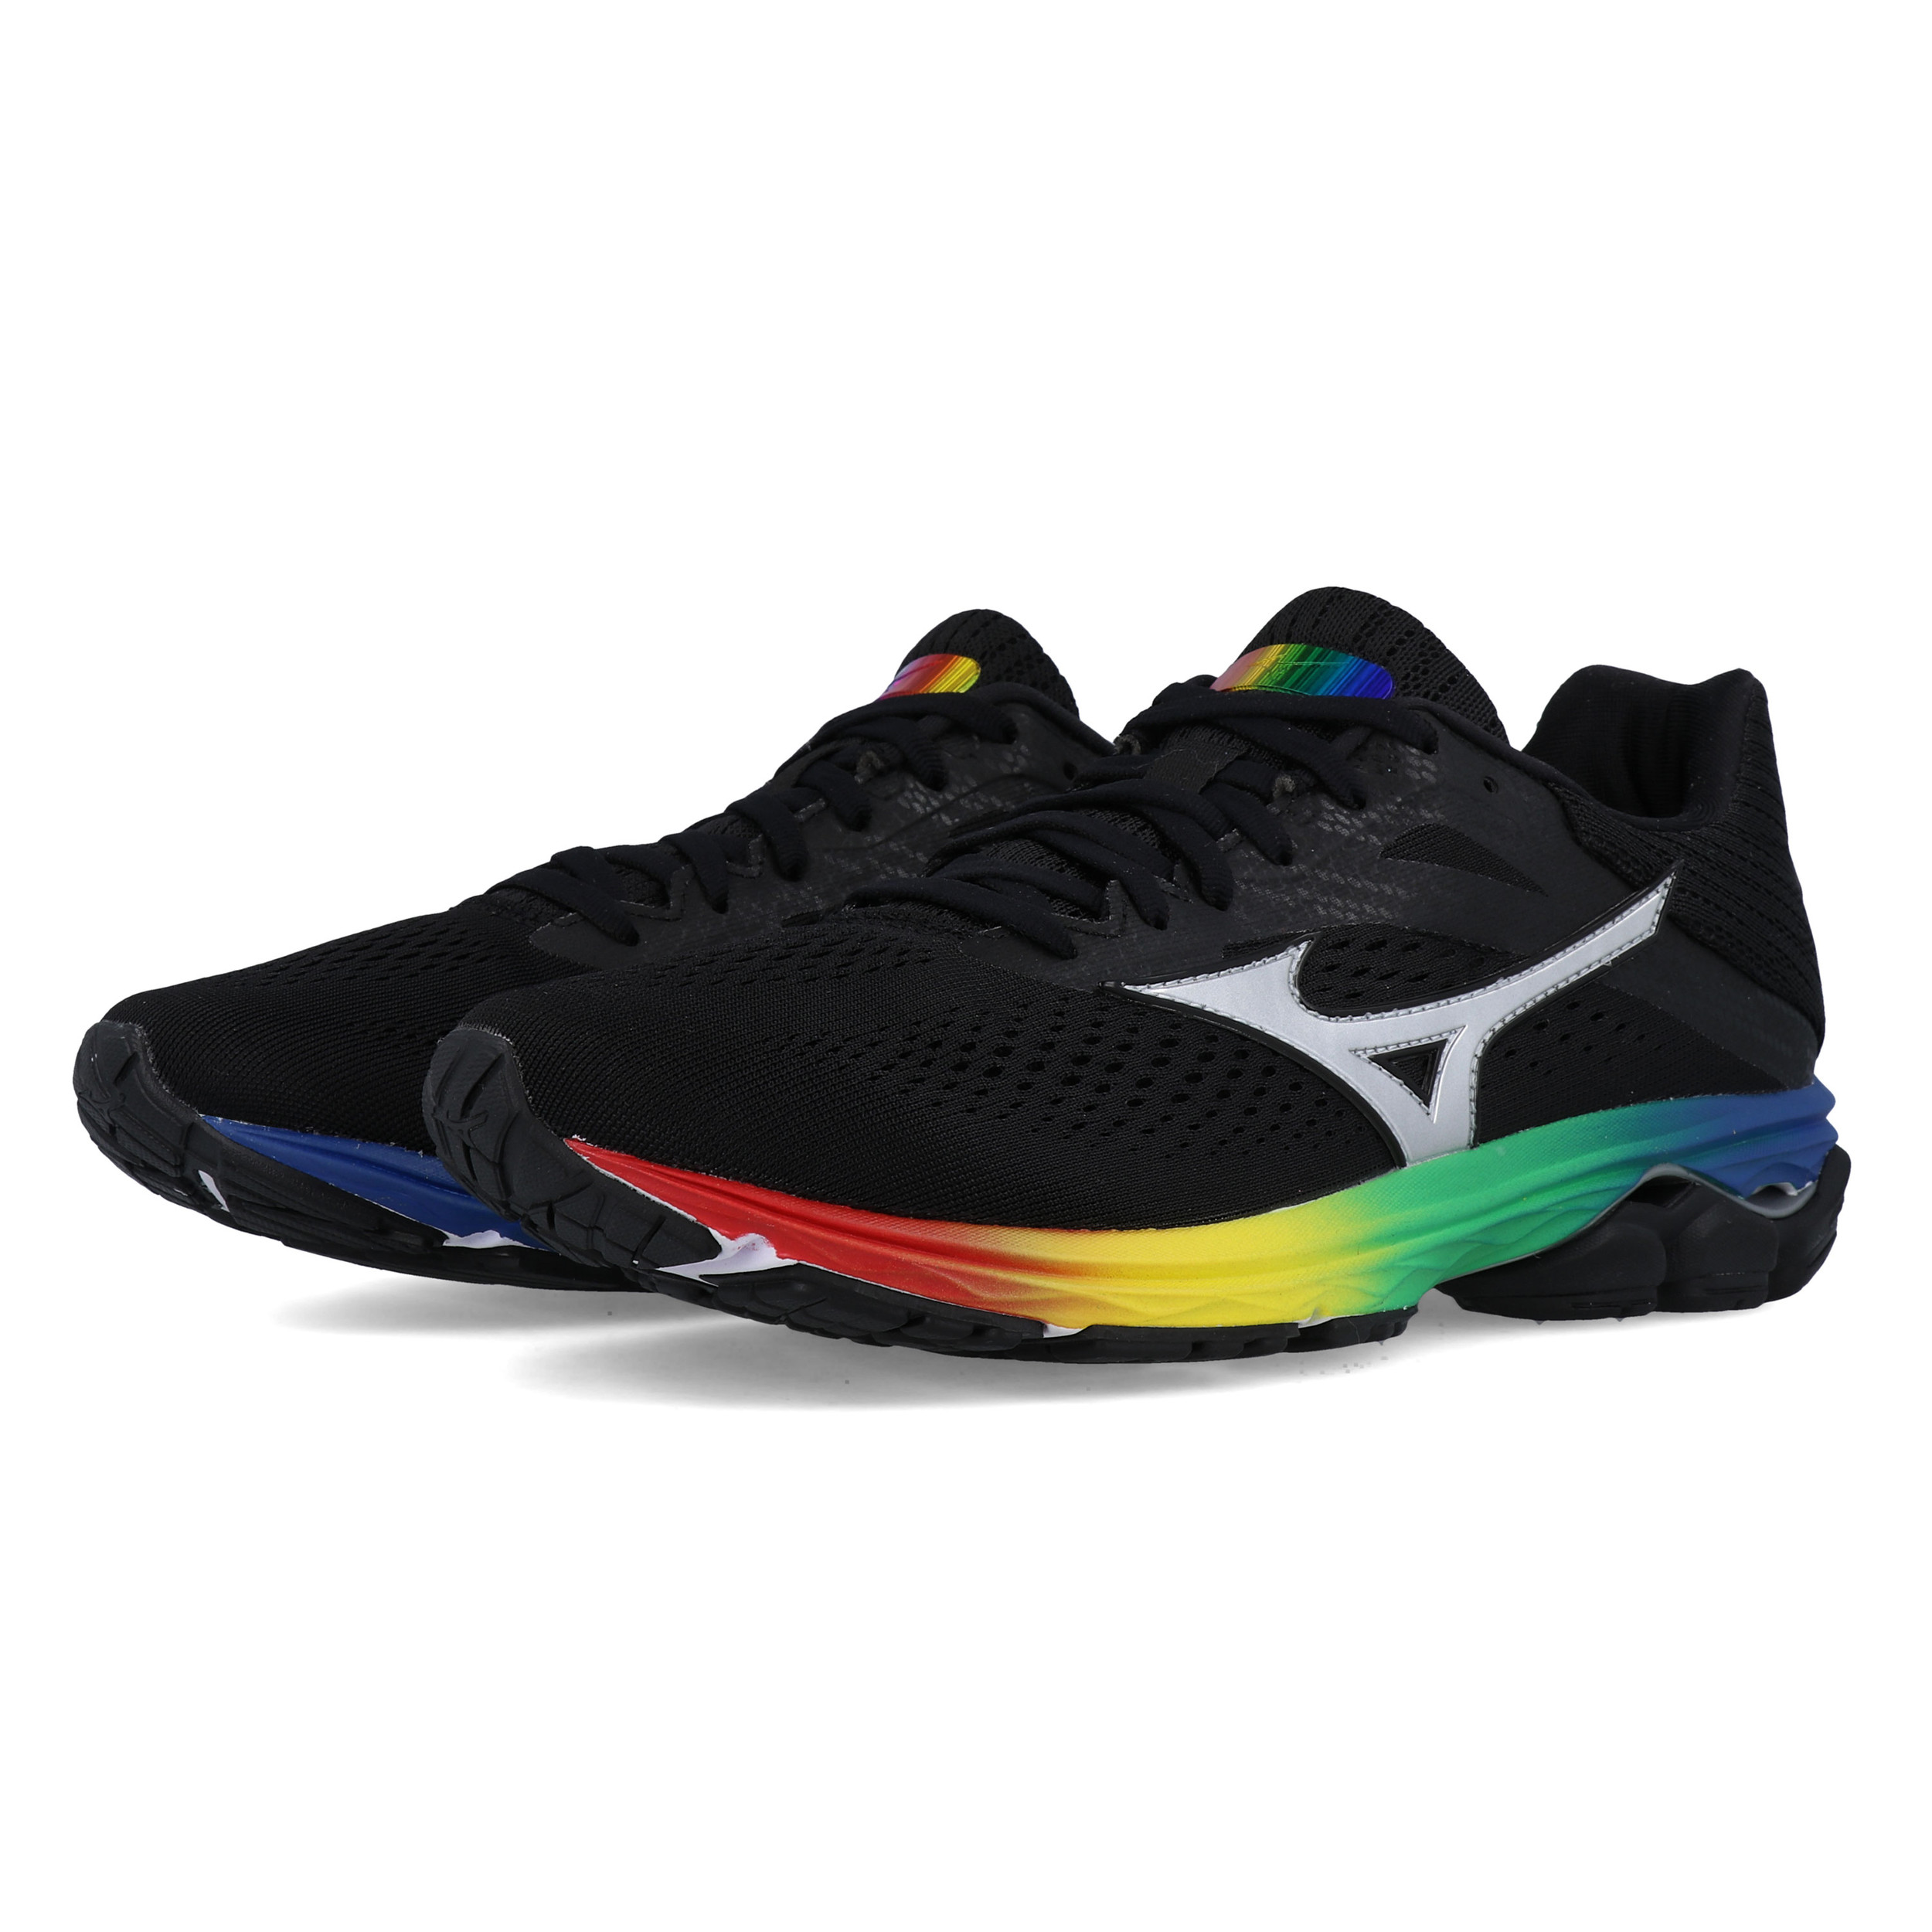 Mizuno Wave Rider 23 Running Shoes